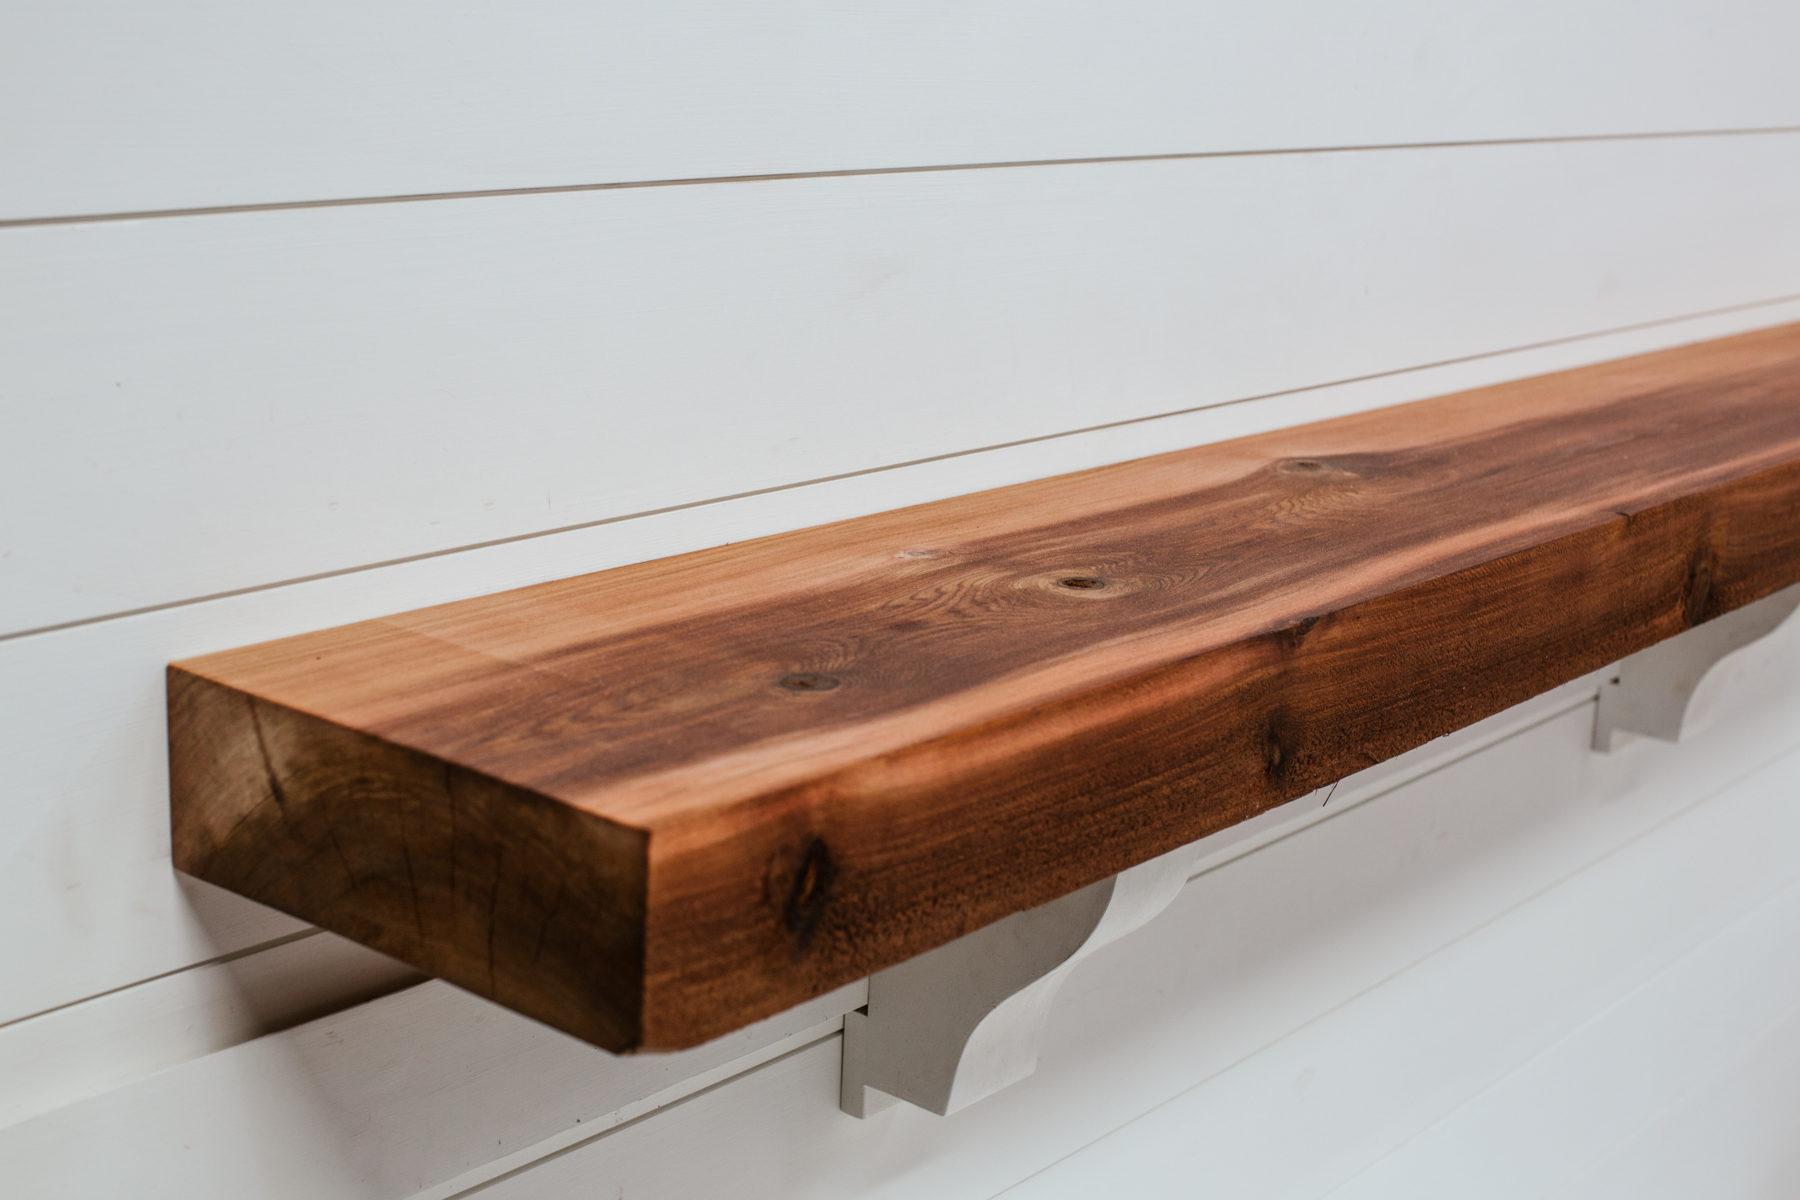 Corduroy Timber Mantel with Heritage Finish from Water's Edge Woods